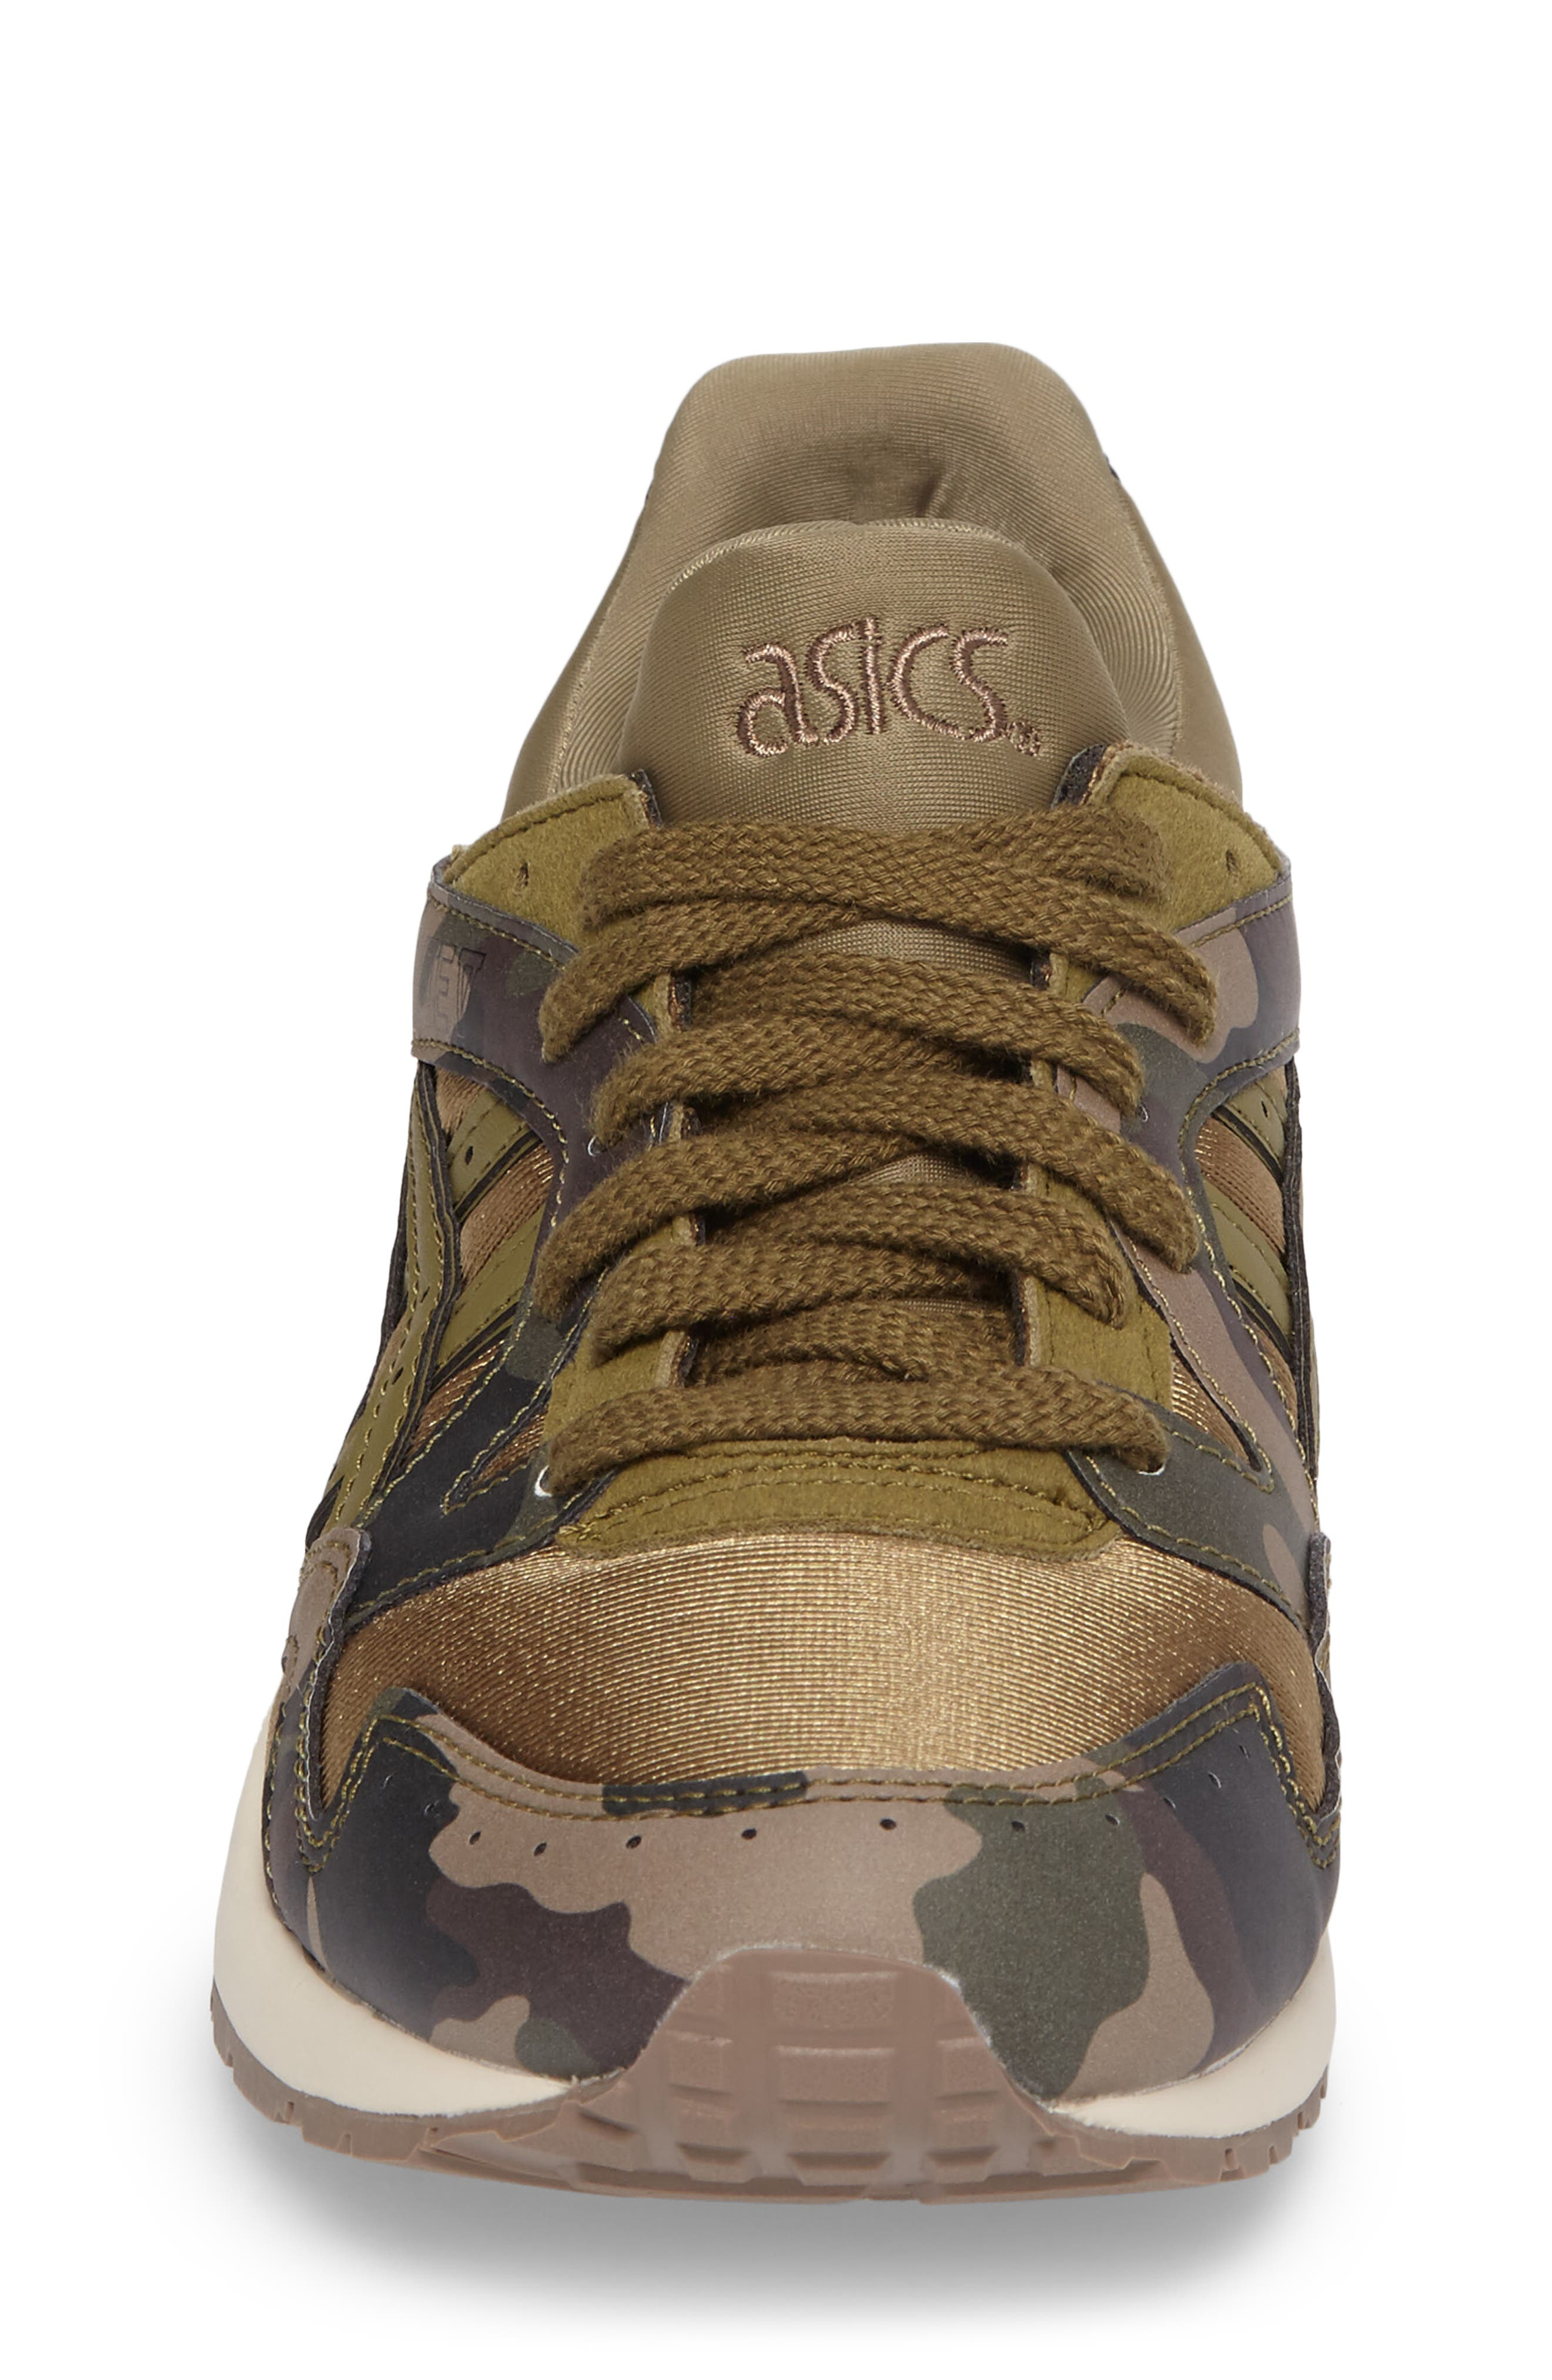 GEL-LYTE<sup>®</sup> V GS Sneaker,                             Alternate thumbnail 4, color,                             Martini Olive/ Martini Olive